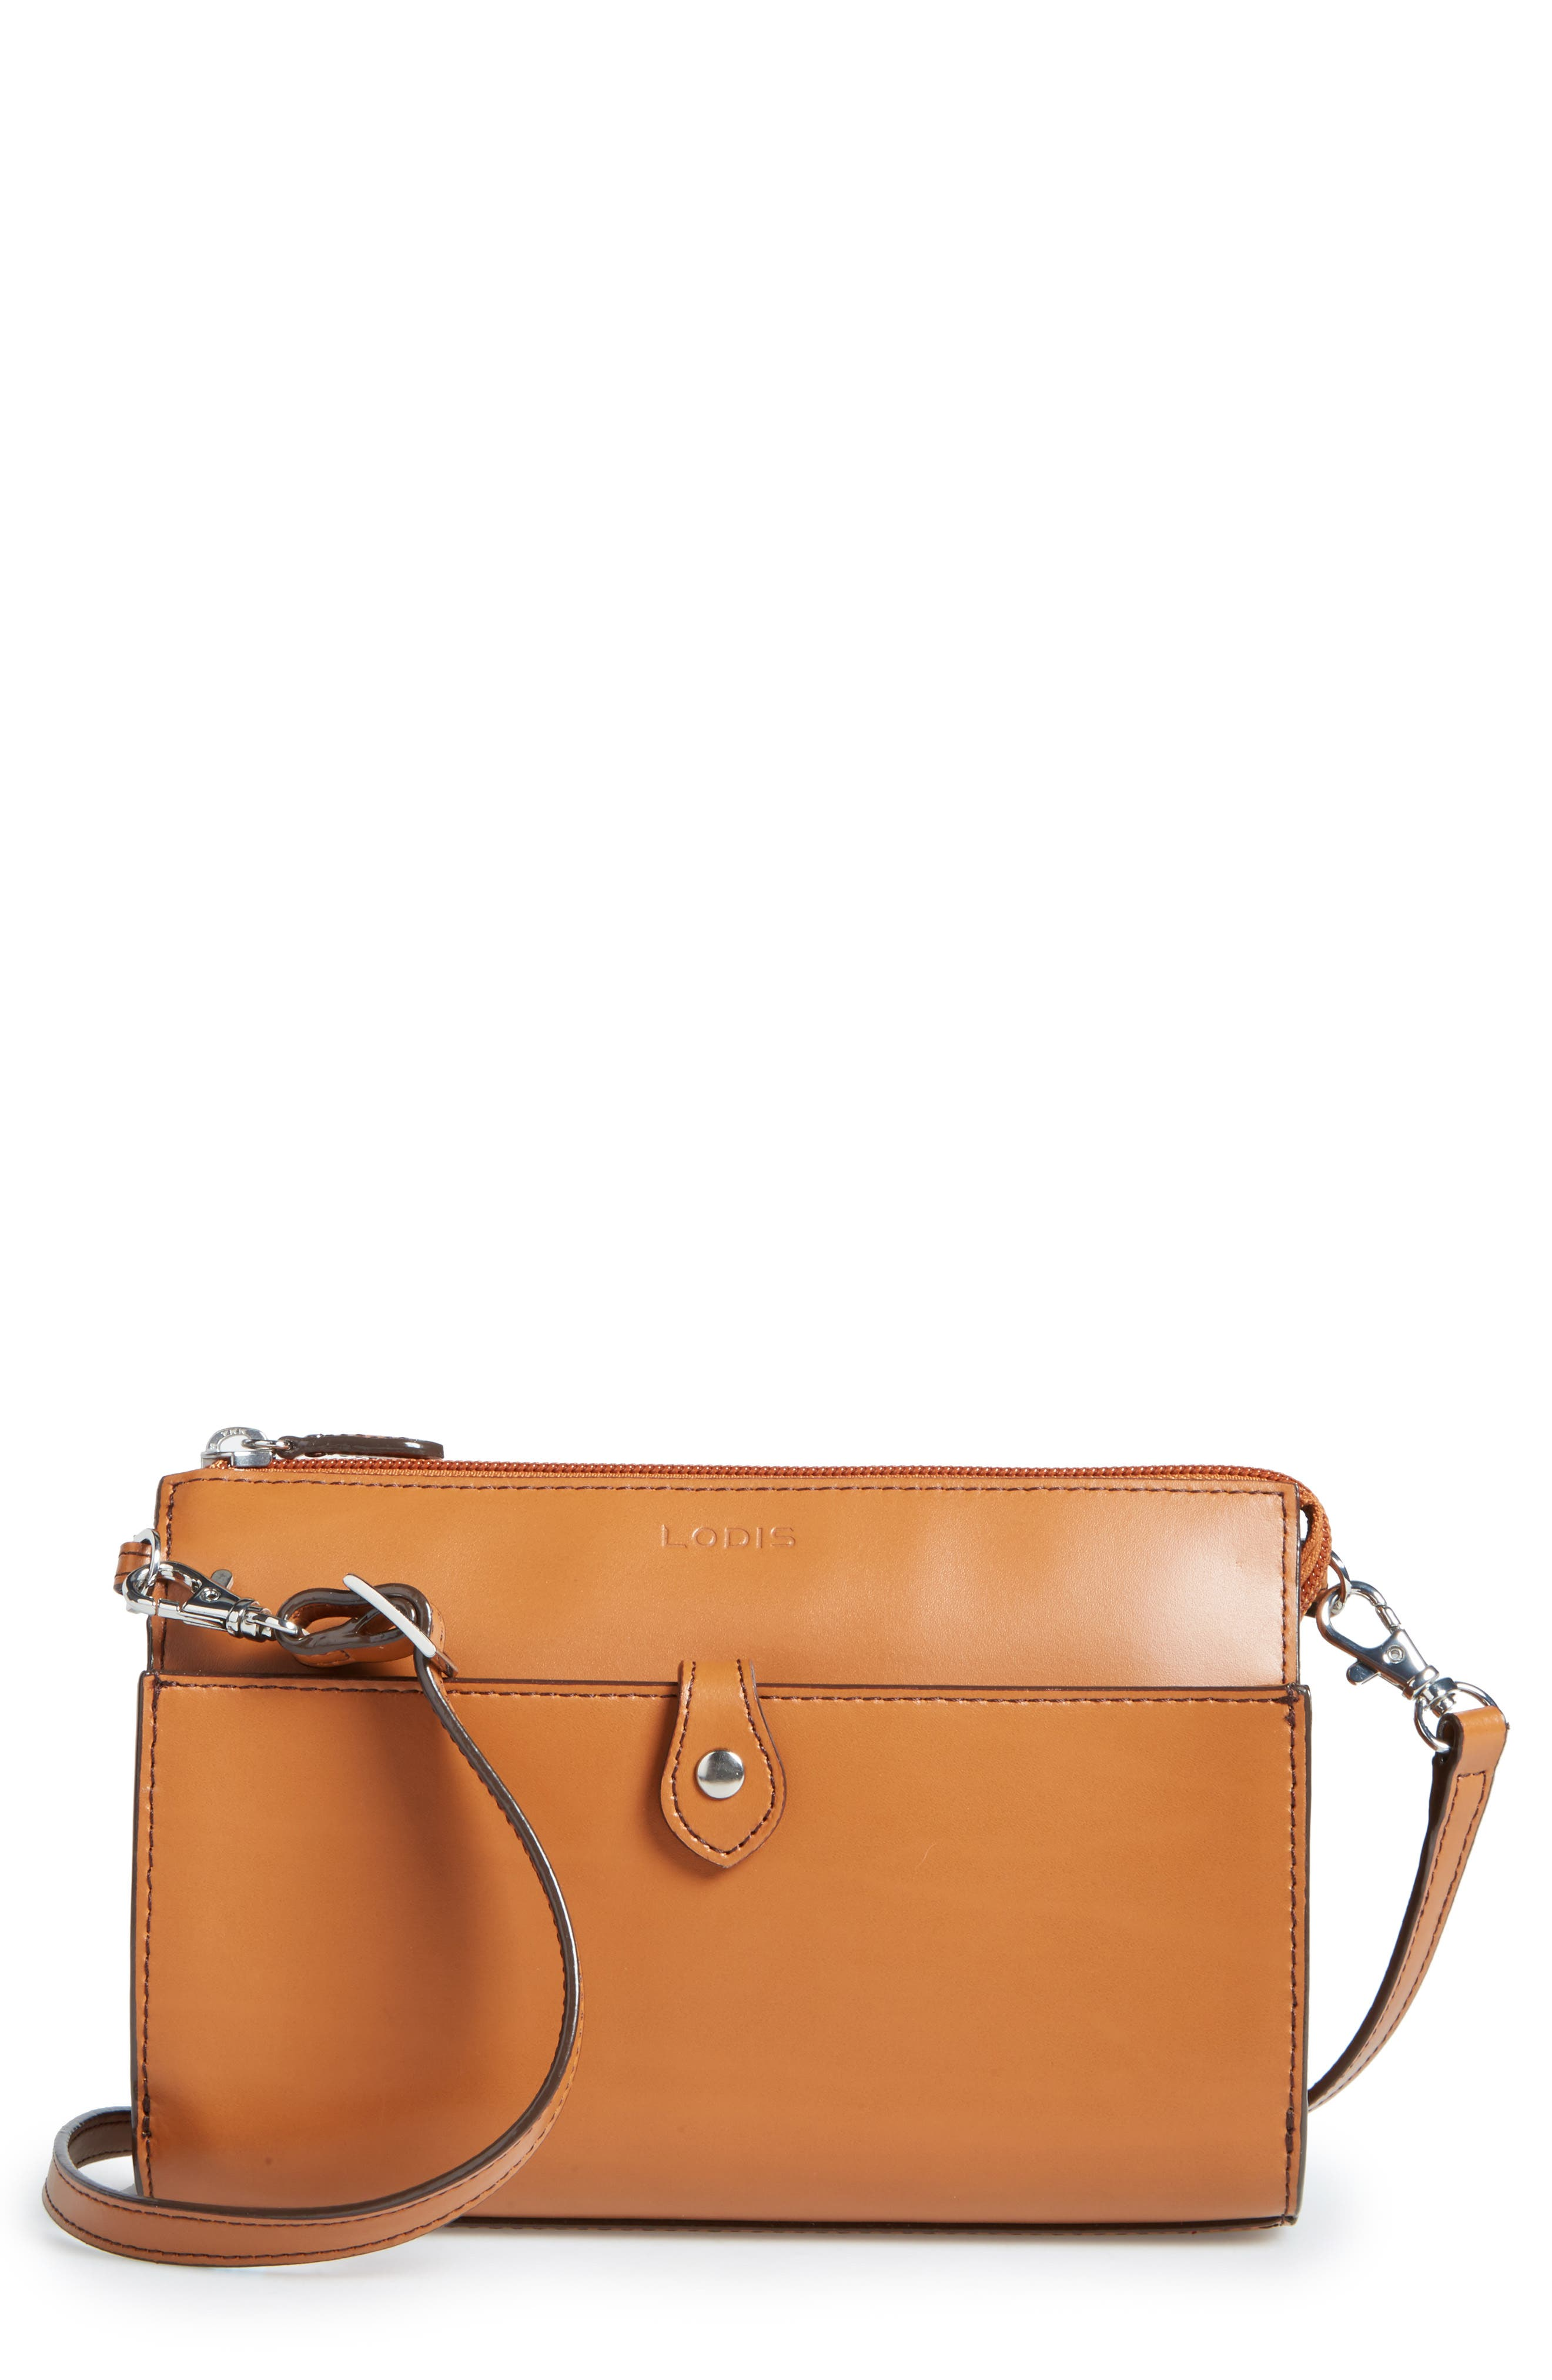 Audrey Under Lock & Key Vicky Convertible Leather Crossbody Bag,                         Main,                         color, TOFFEE